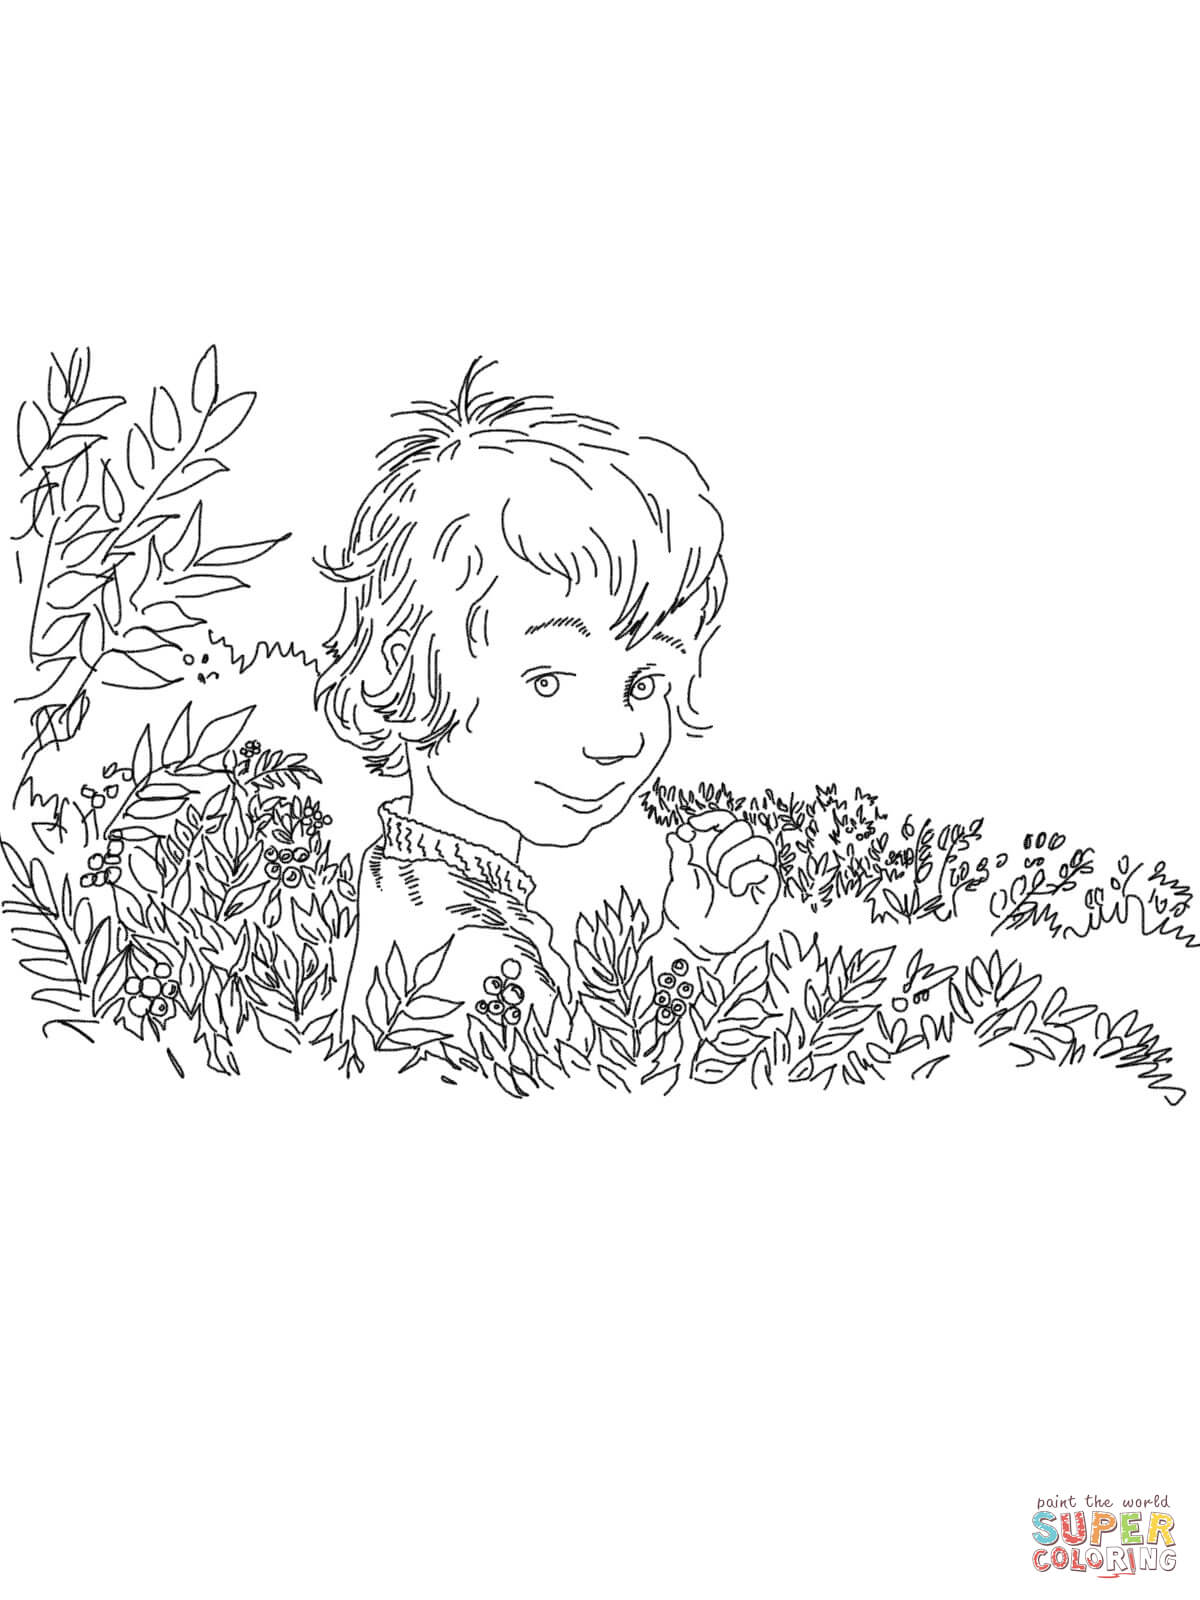 blueberries for sal coloring page blueberries for sal coloring page blueberries my older for blueberries sal page coloring